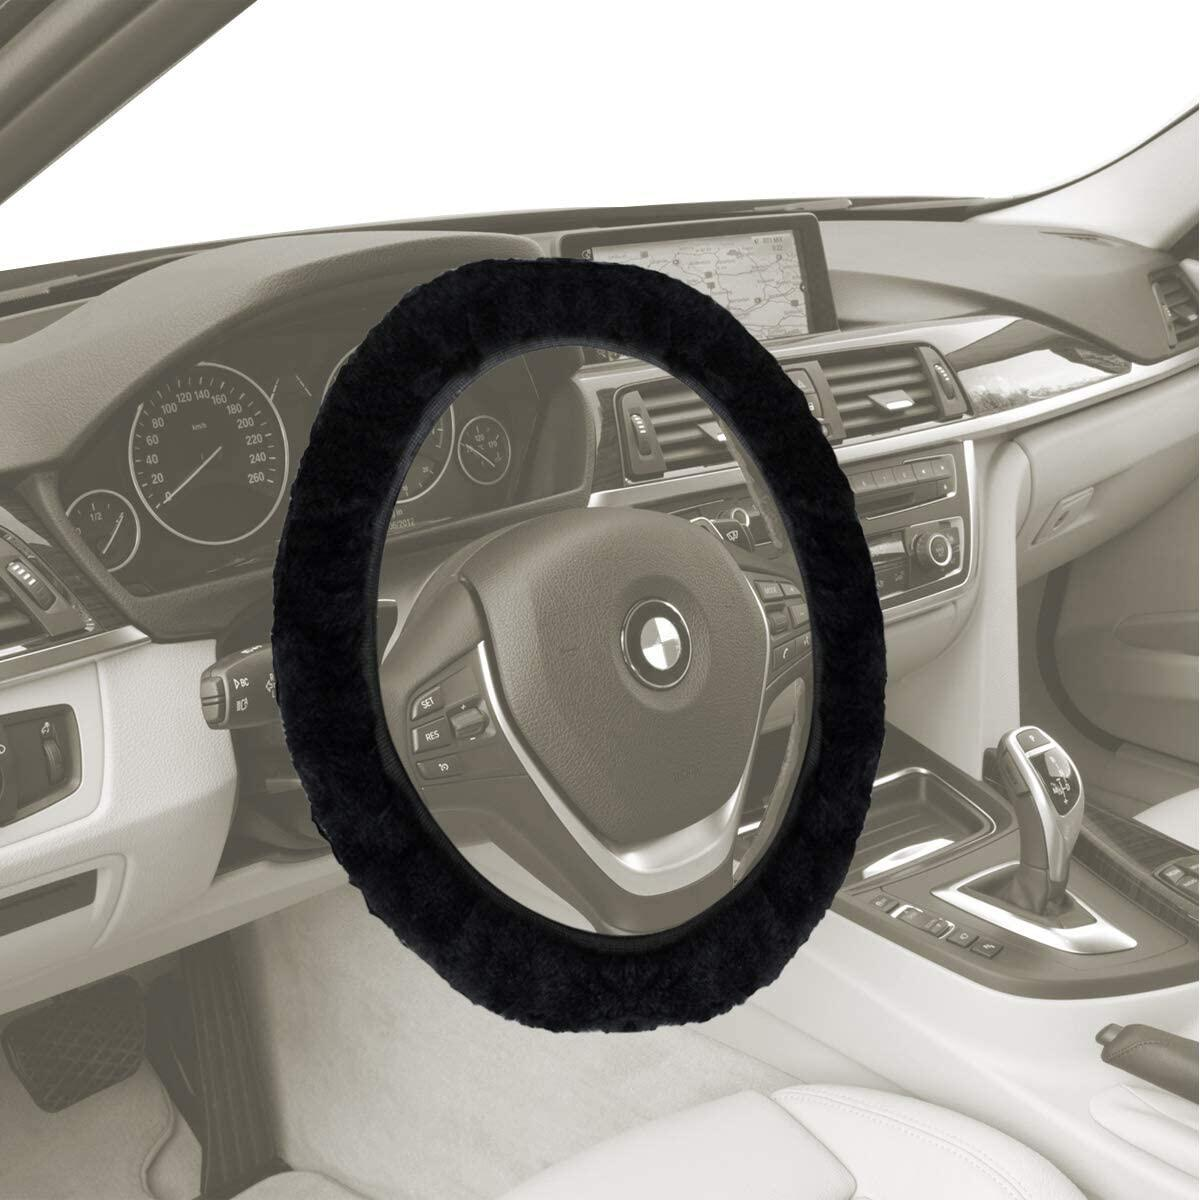 VaygWay Sheepskin Fur Wheel Cover - Black Fuzzy Steering Wheel Cover – Stretch-On Plush Furry Cover - for Car Auto SUV